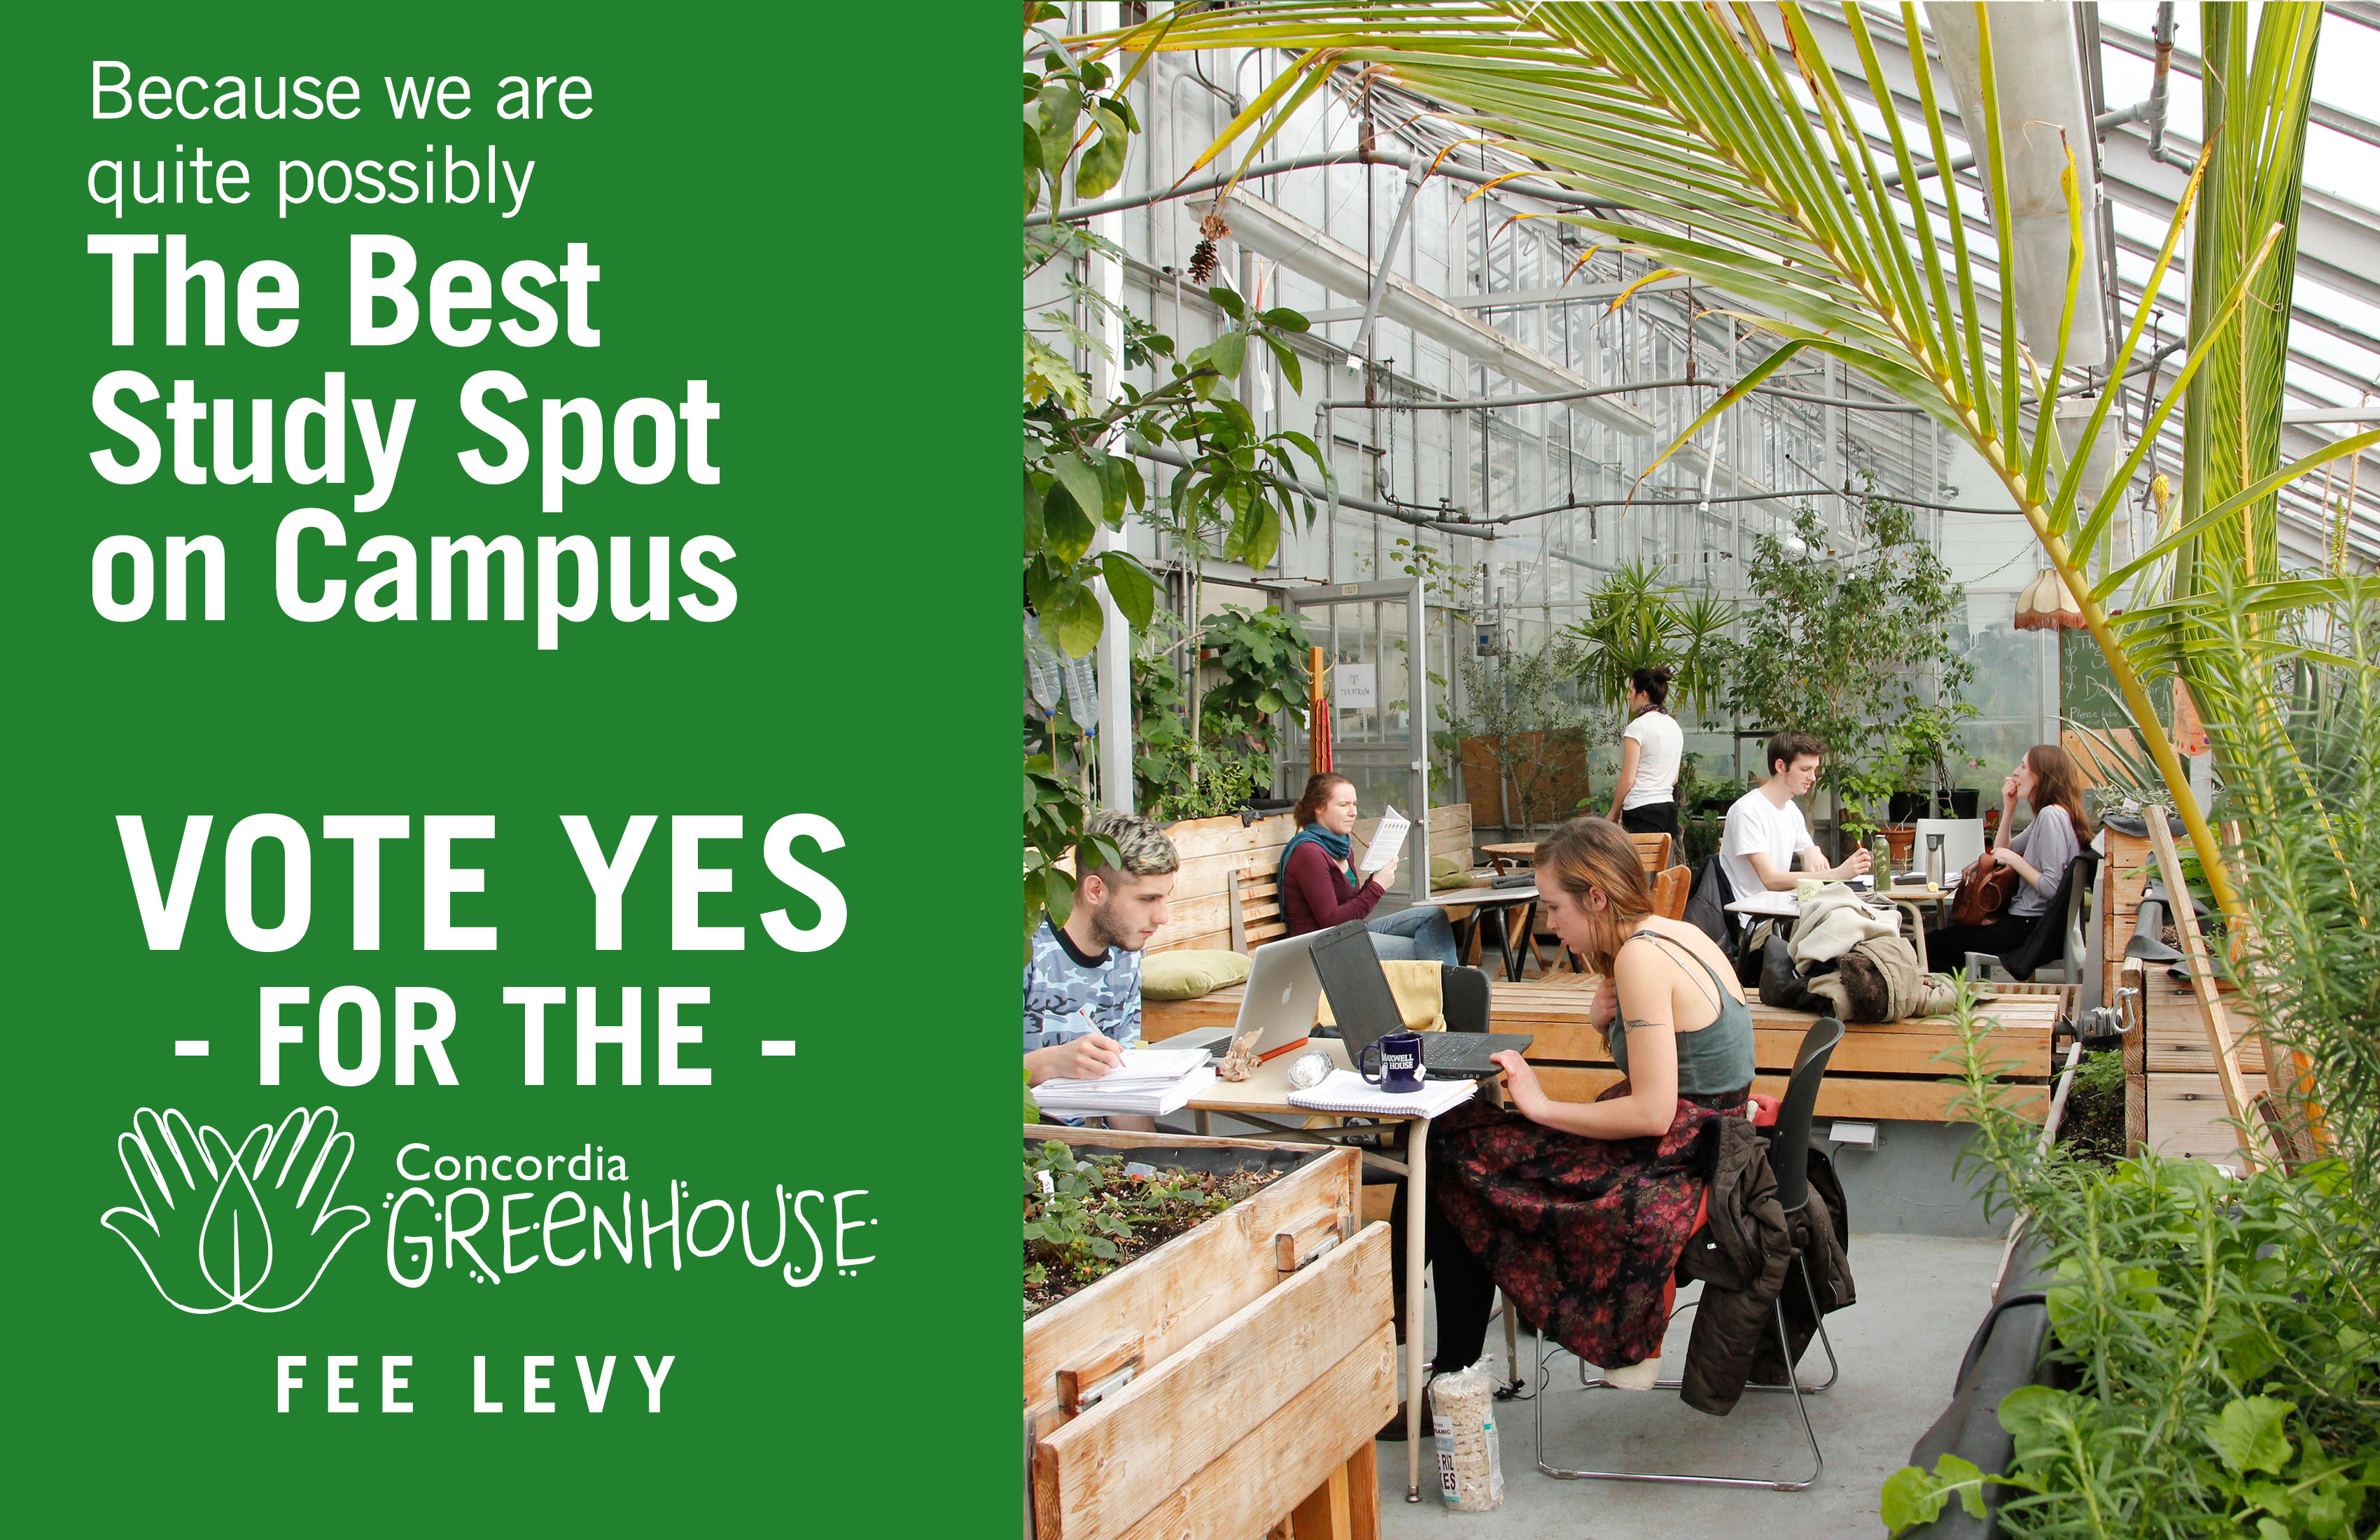 What People Have To Say About The Greenhouse The